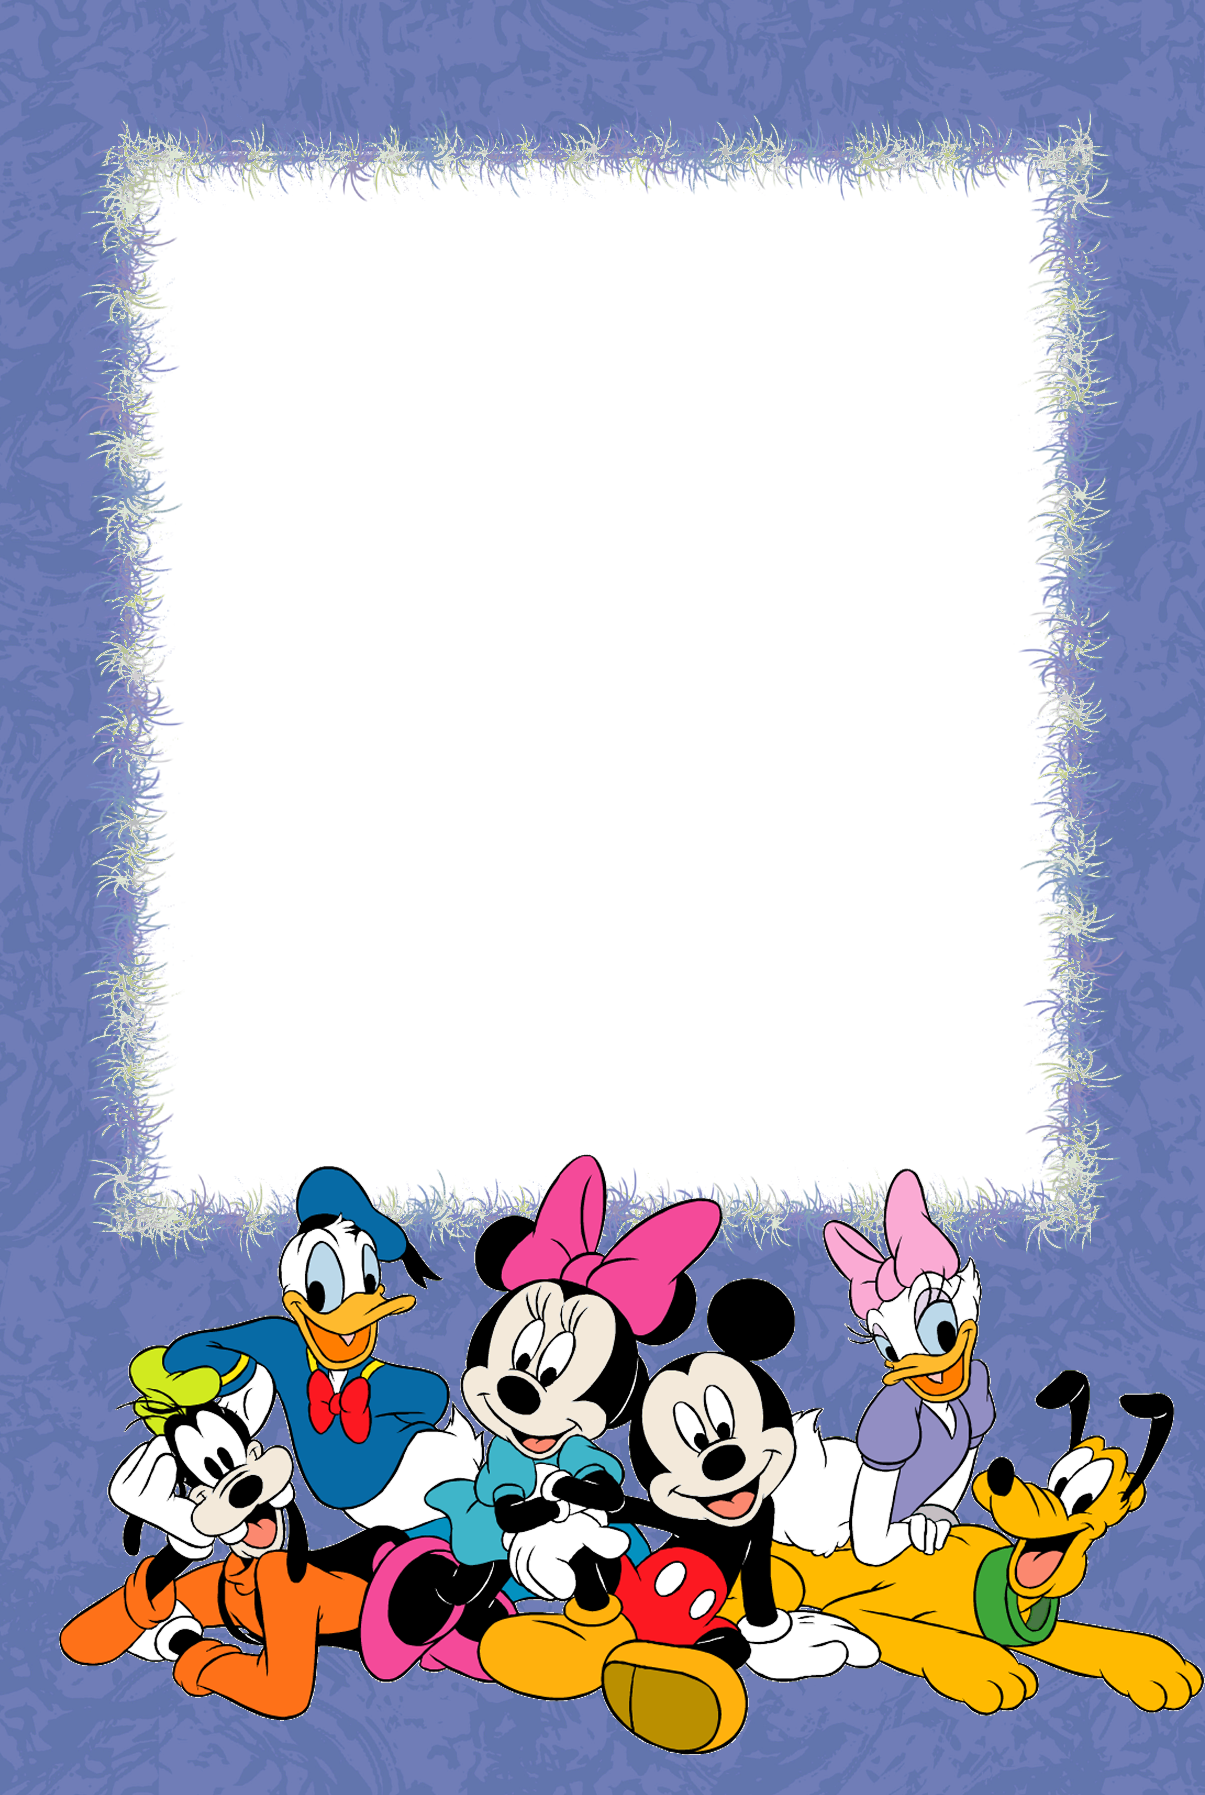 Border Design Disney Character : Purple png kids photo frame with disney characters